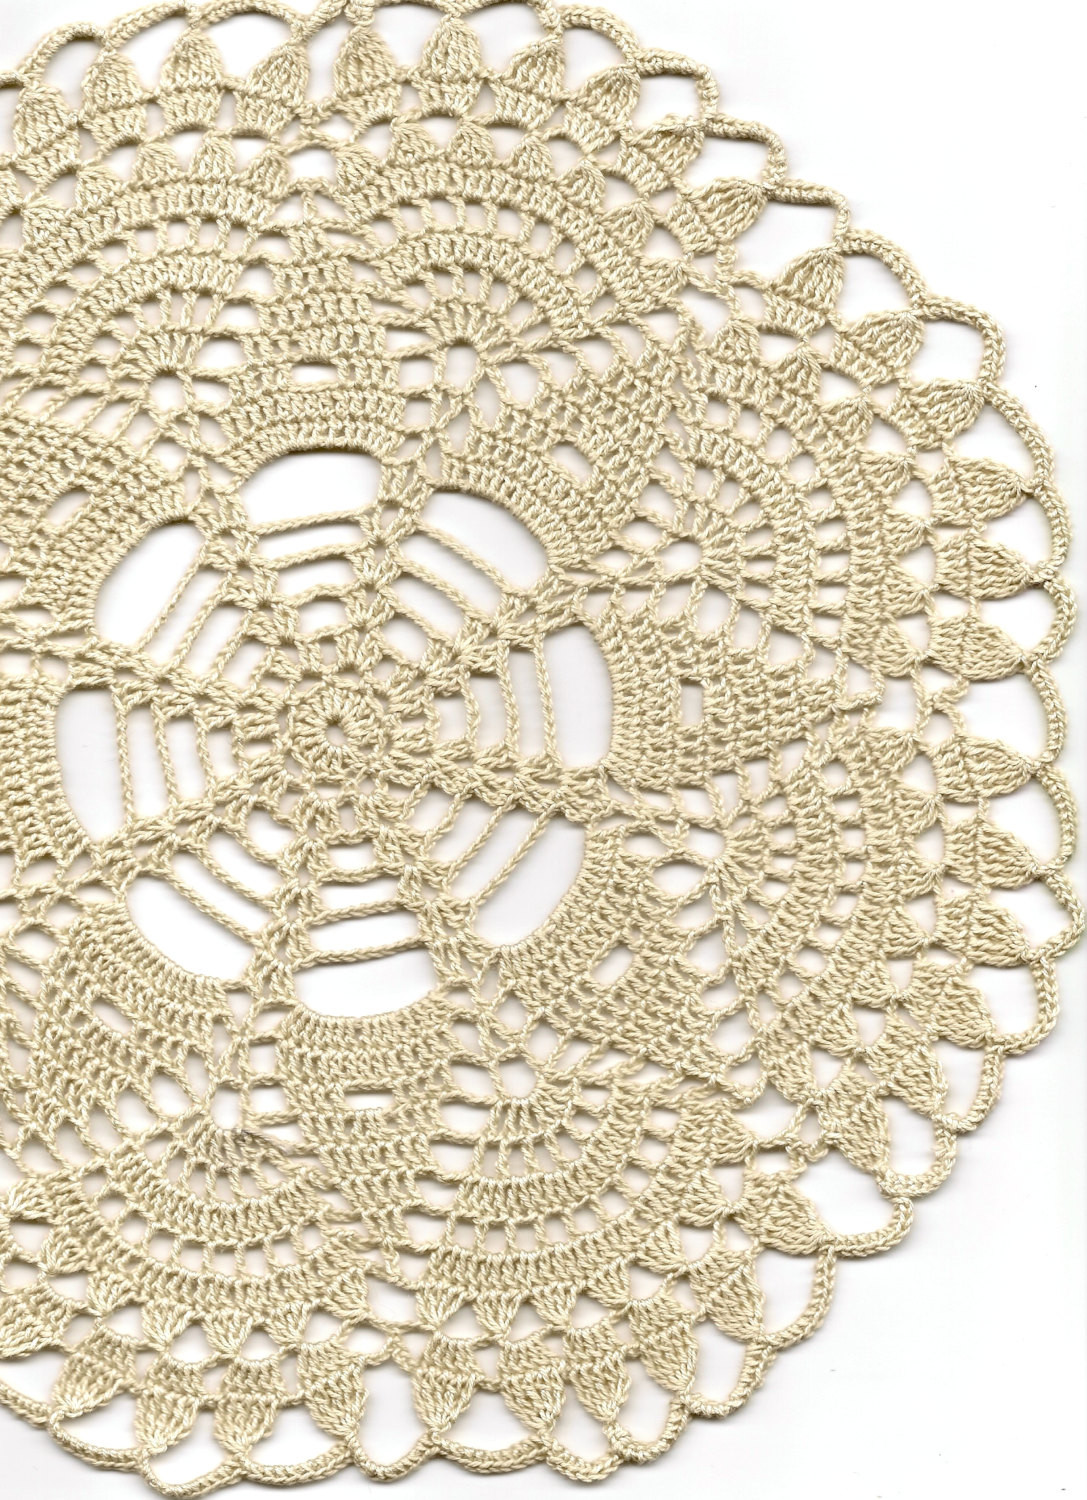 Vintage Crochet Doilies Awesome Crochet Doilies Crocheted Lace Doily Rustic Farmhouse Vintage Of New 45 Models Vintage Crochet Doilies